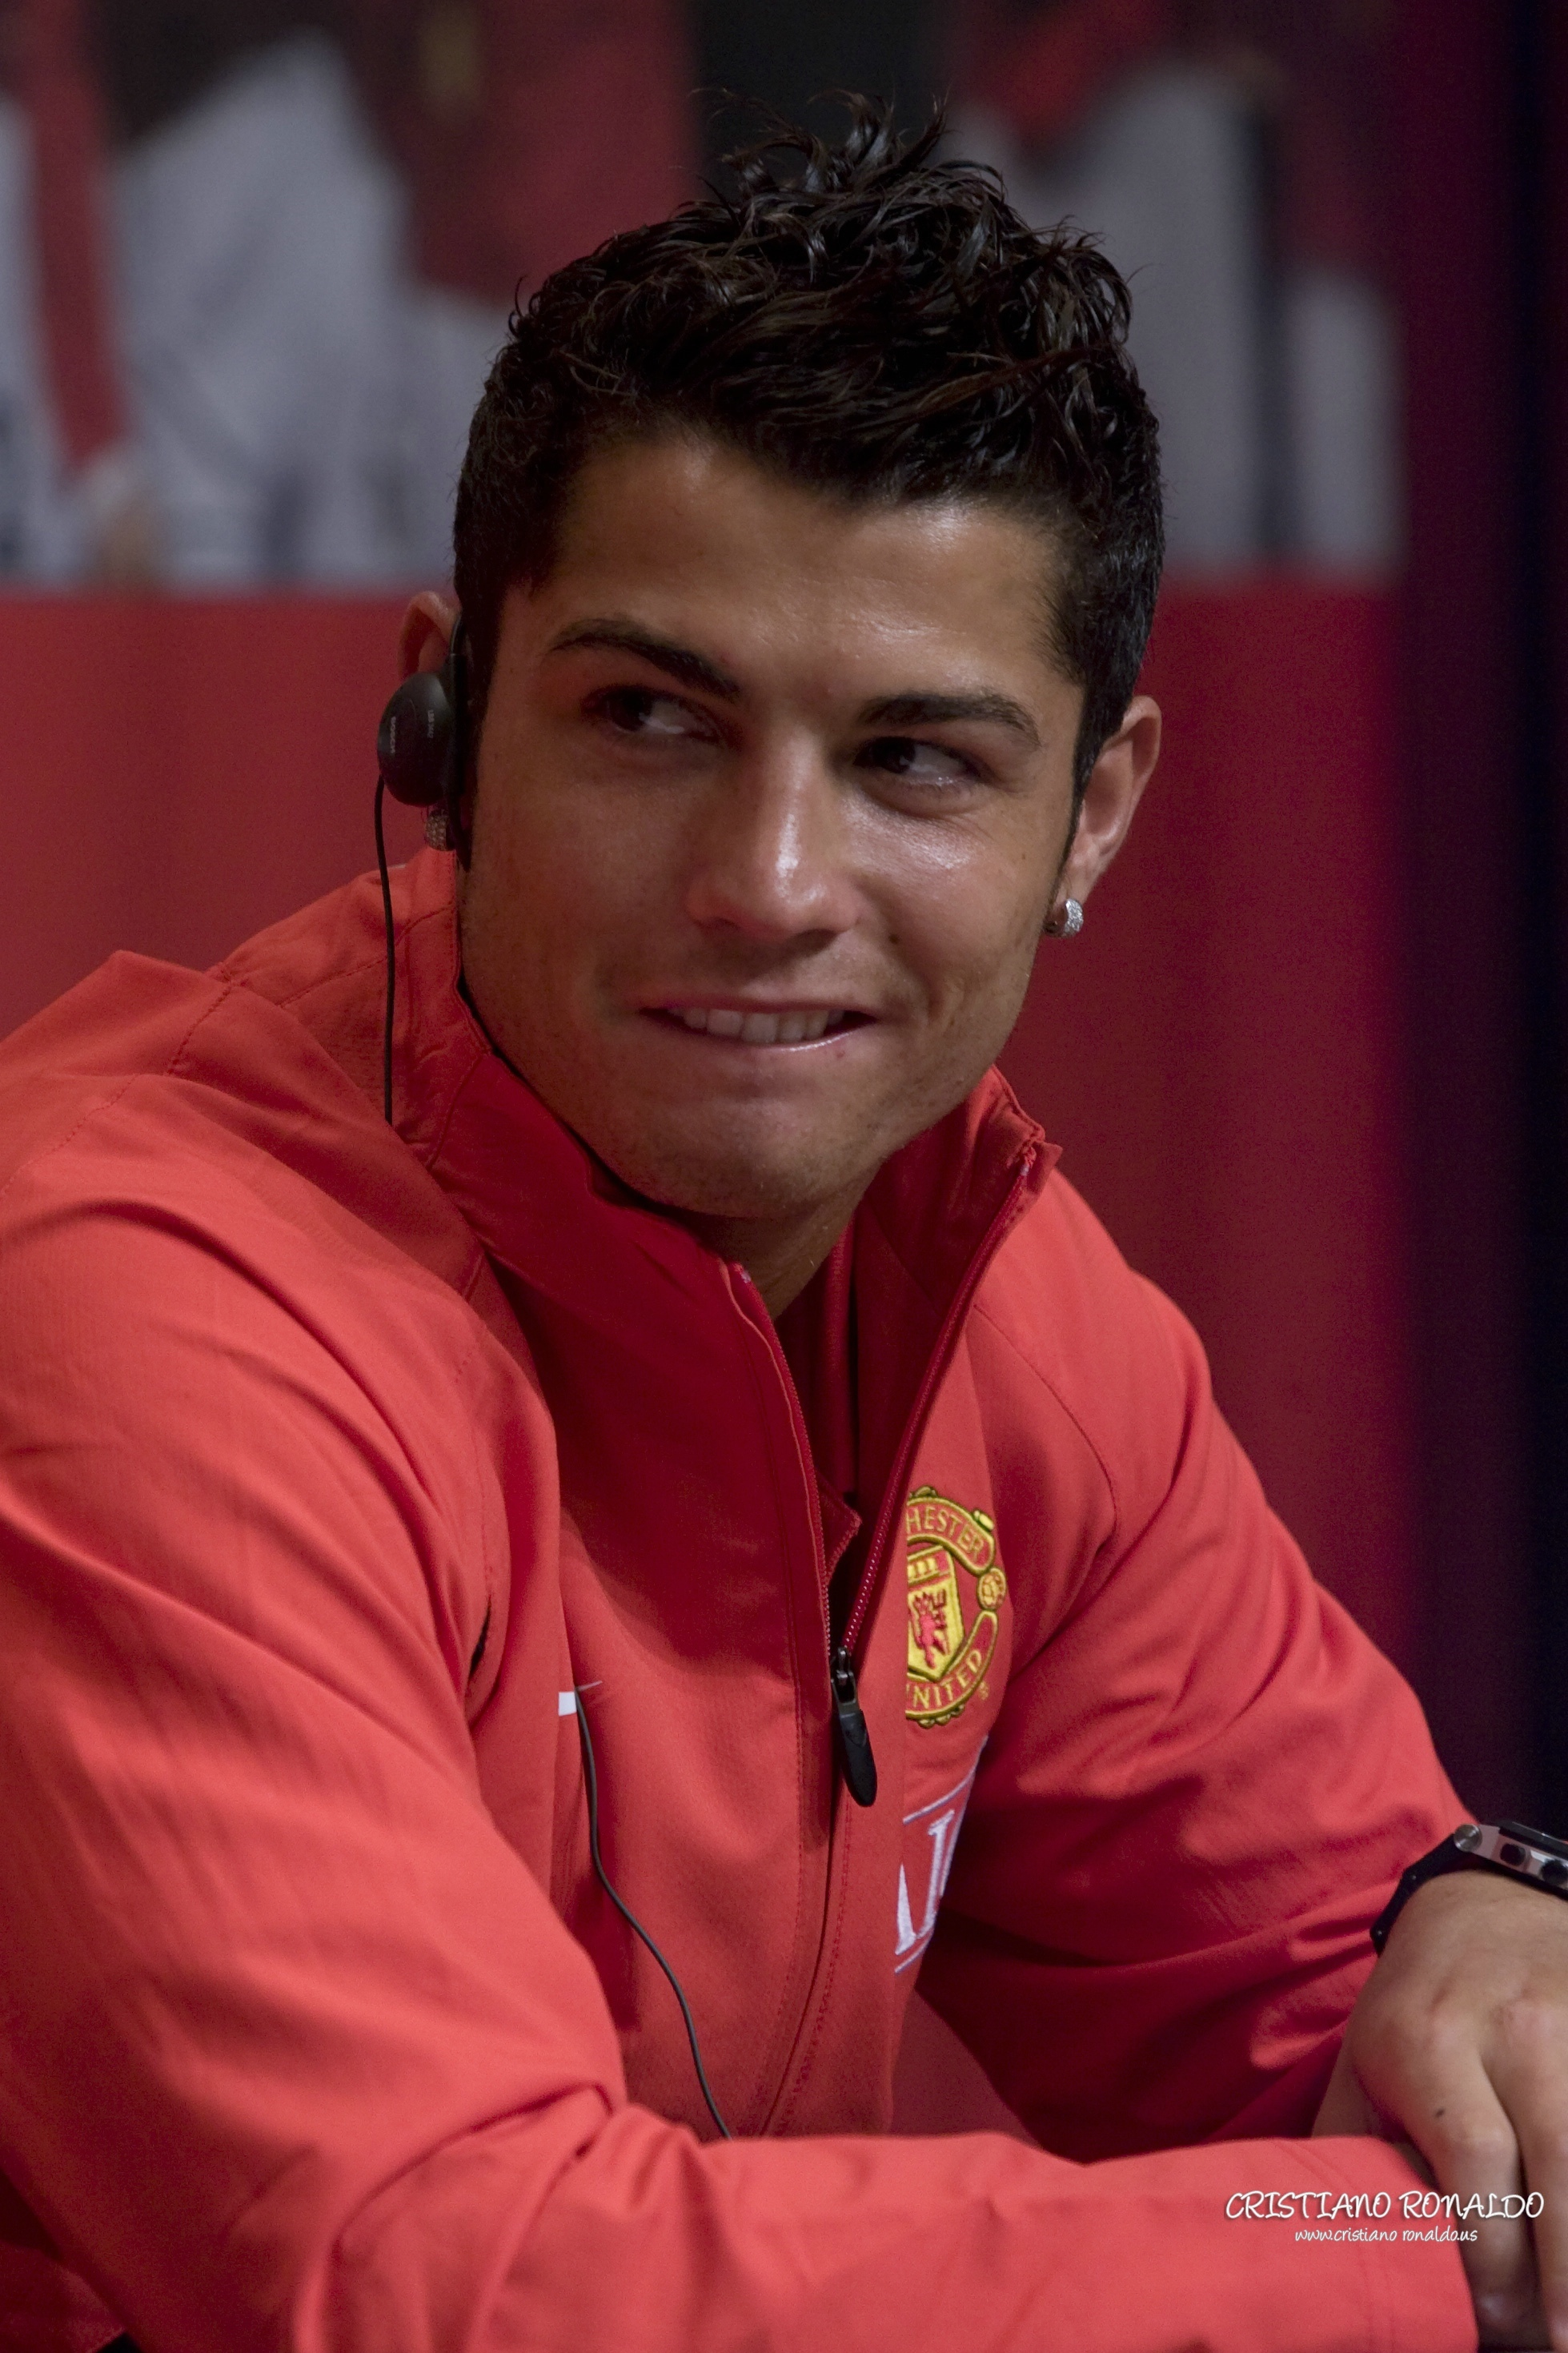 11510 download wallpaper Sports, People, Football, Men, Cristiano Ronaldo screensavers and pictures for free